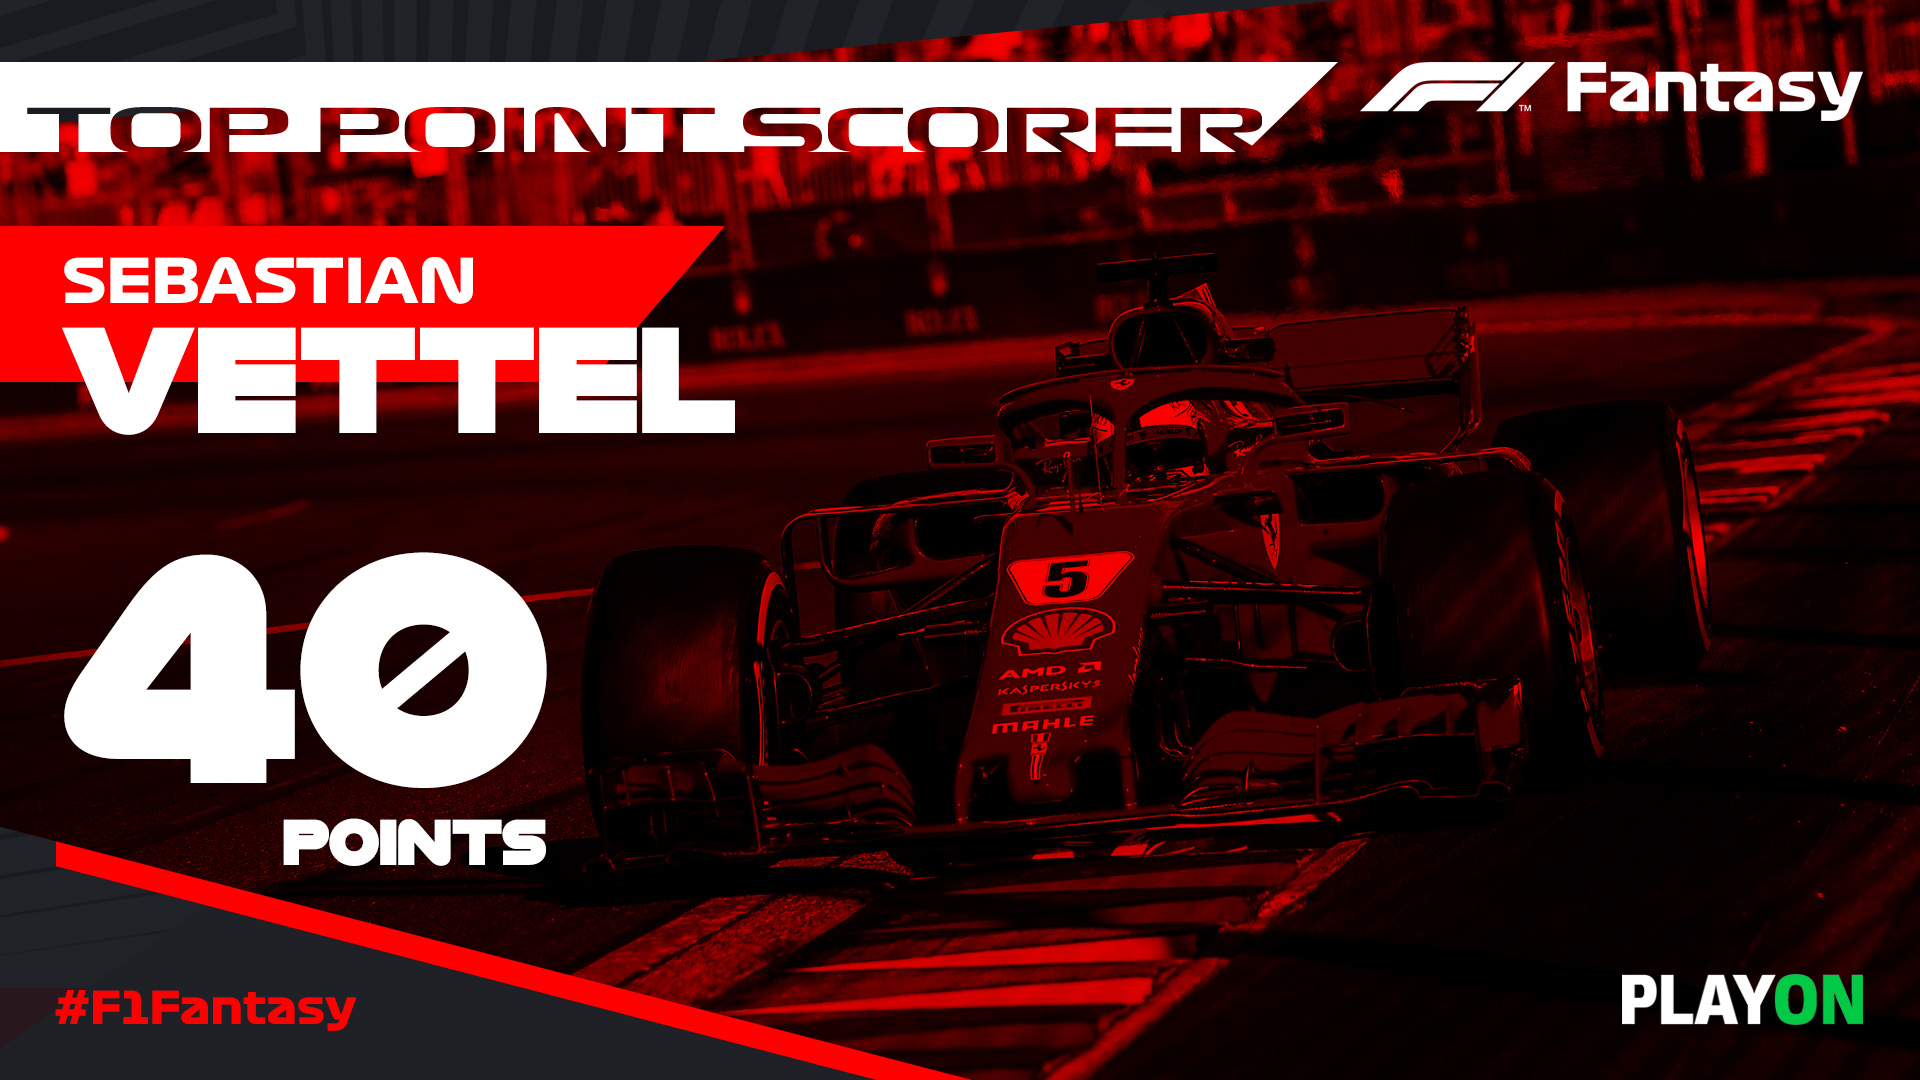 F1 Fantasy Top Point Scorer 1920x1080 Vettel